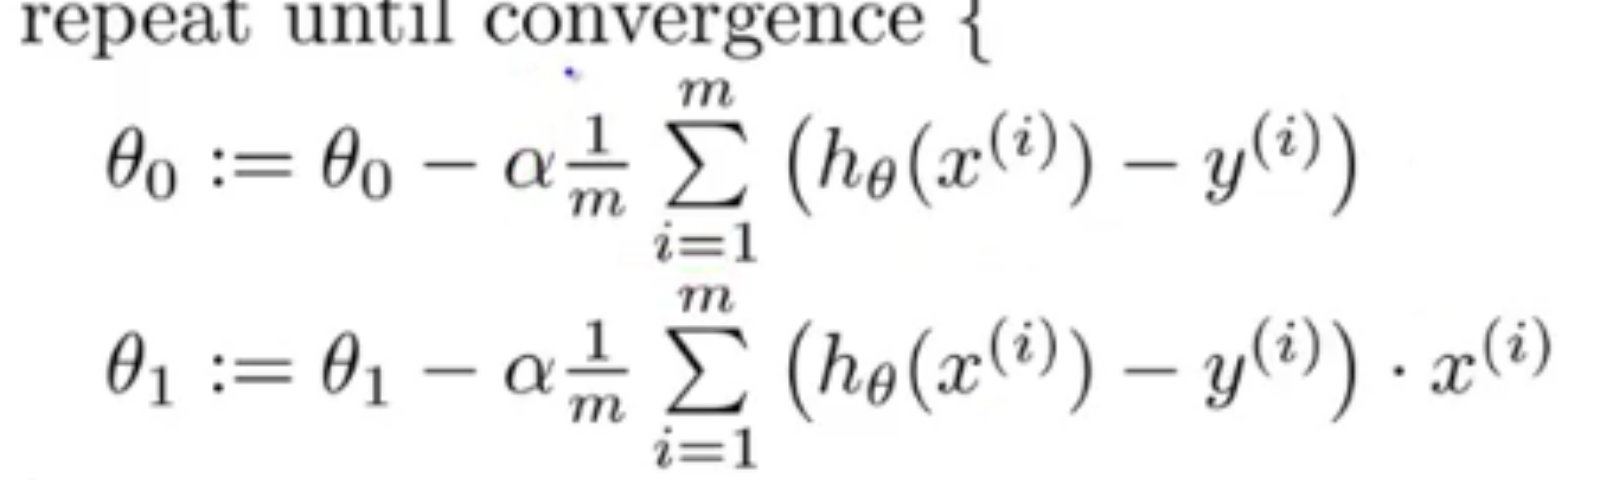 Machine Learning Week 1 Cost Function Gradient Descent And